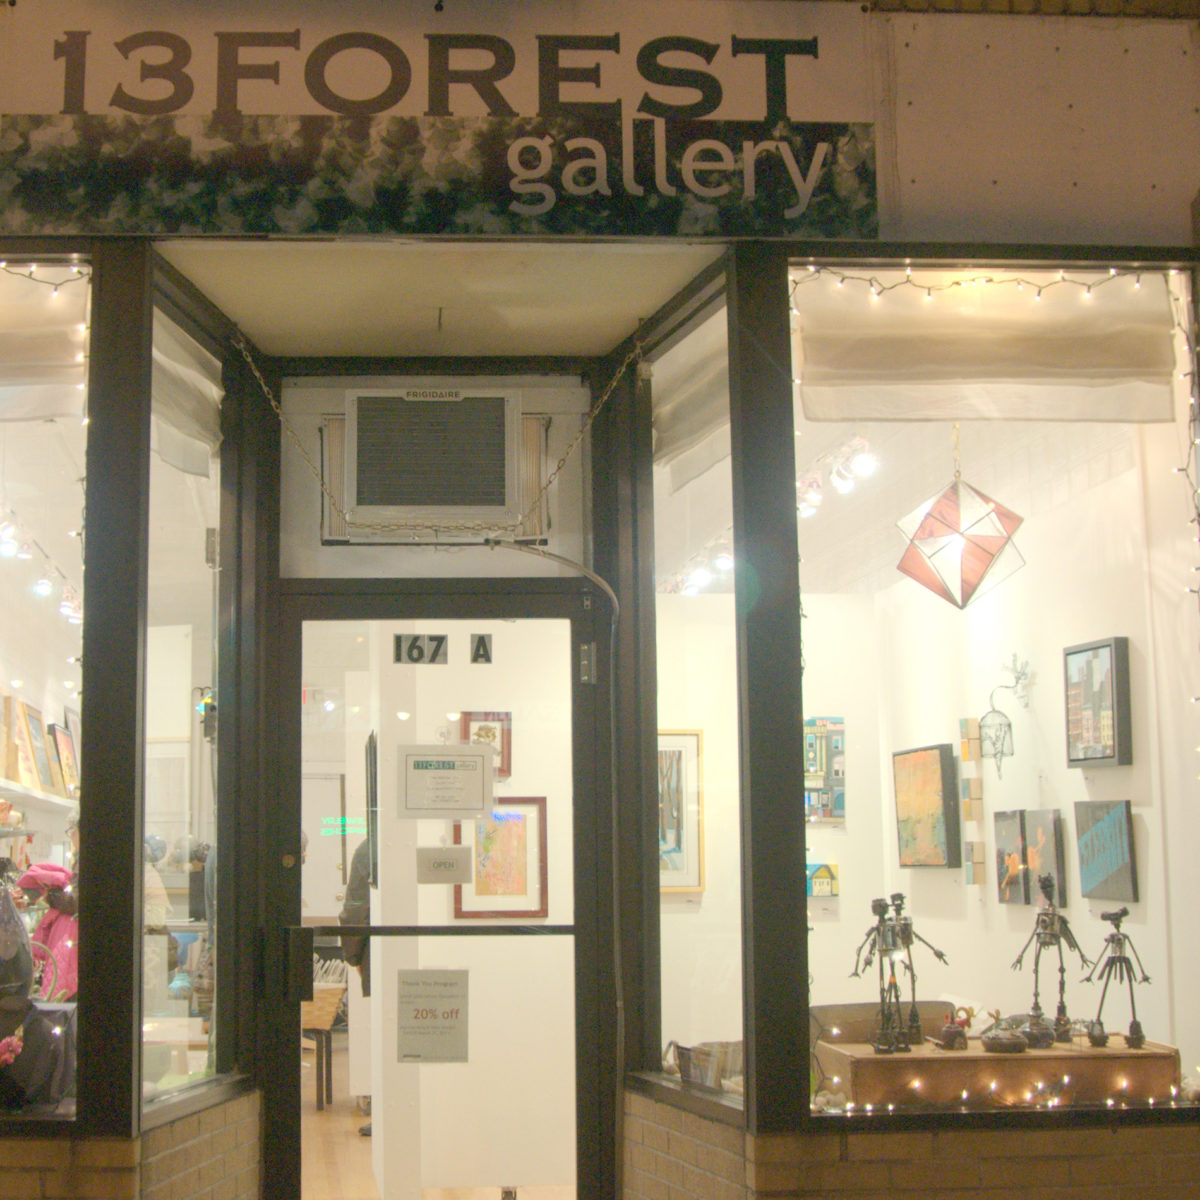 13-forest-gallery